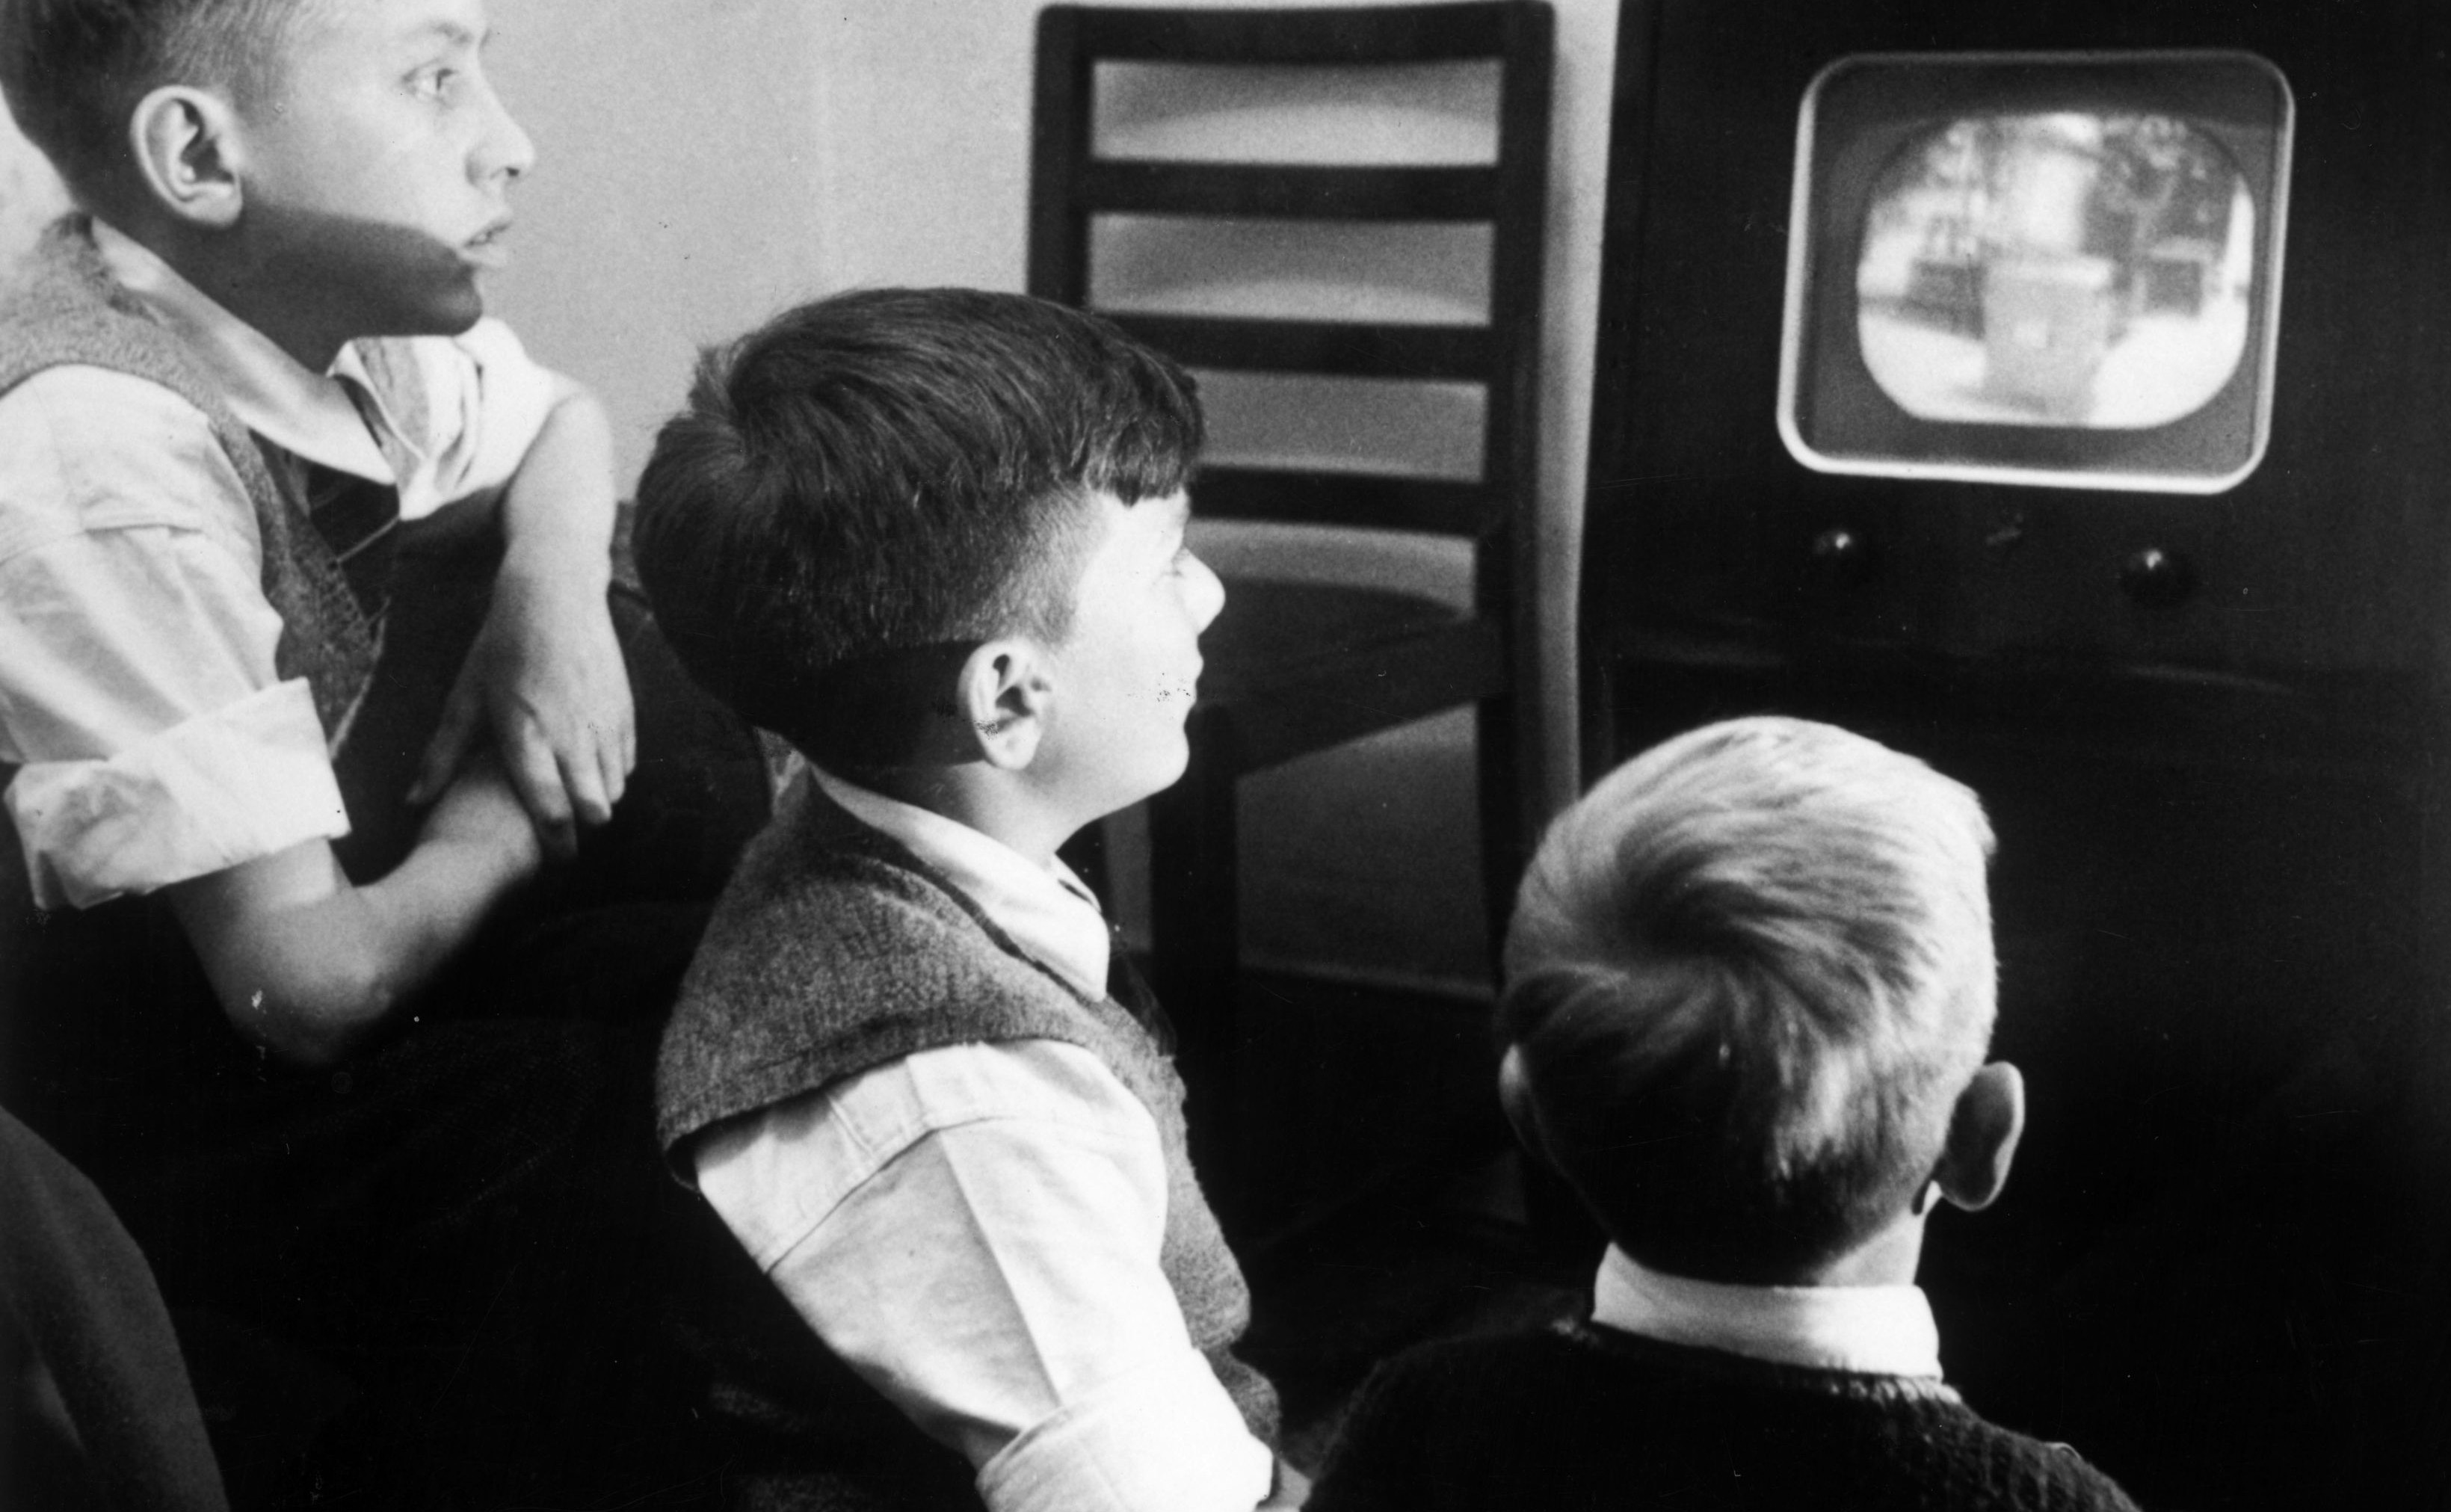 Boys watching TV in the 1950s